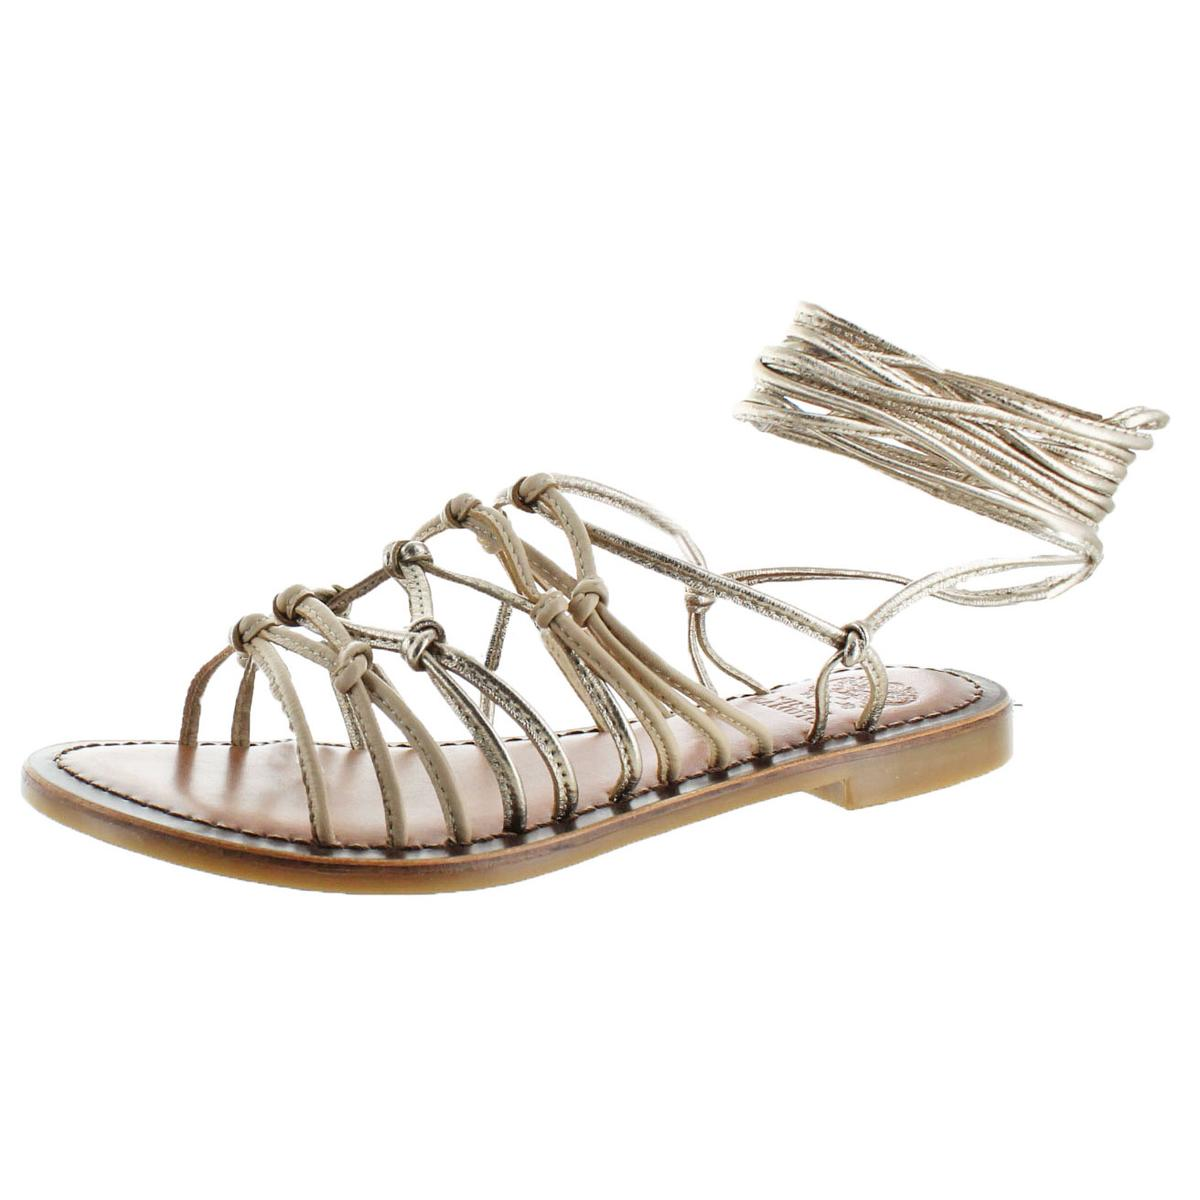 a8739ce83ea Image is loading Vince-Camuto-Womens-Hailey-Beige-Gladiator-Sandals-6-